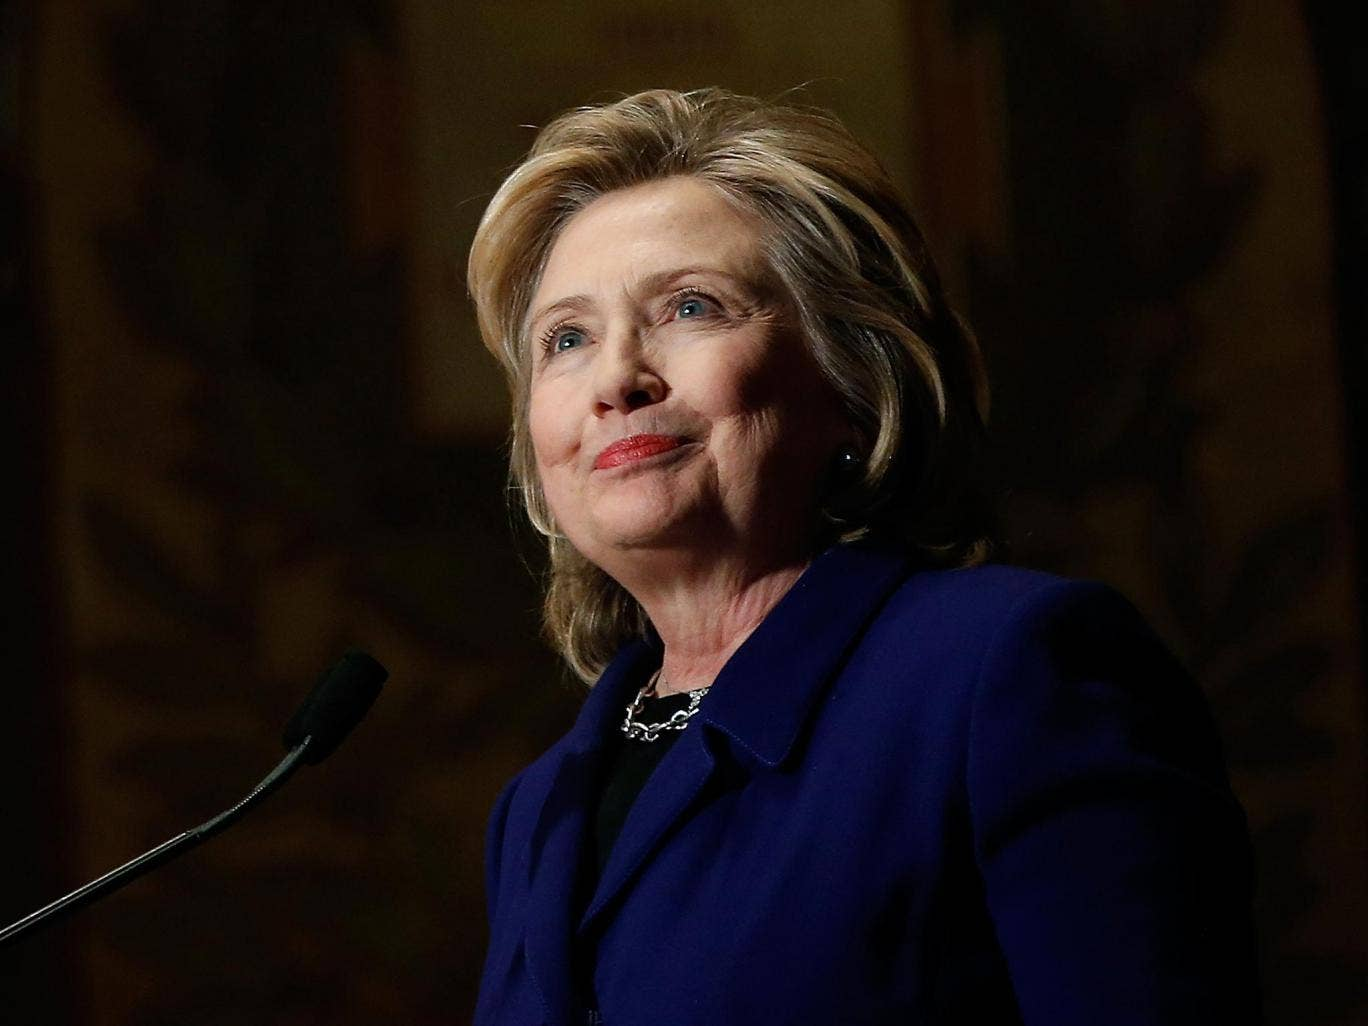 Former U.S. Secretary of State Hillary Clinton is launching her vaunted new book next week and a widely expected run at the US presidency